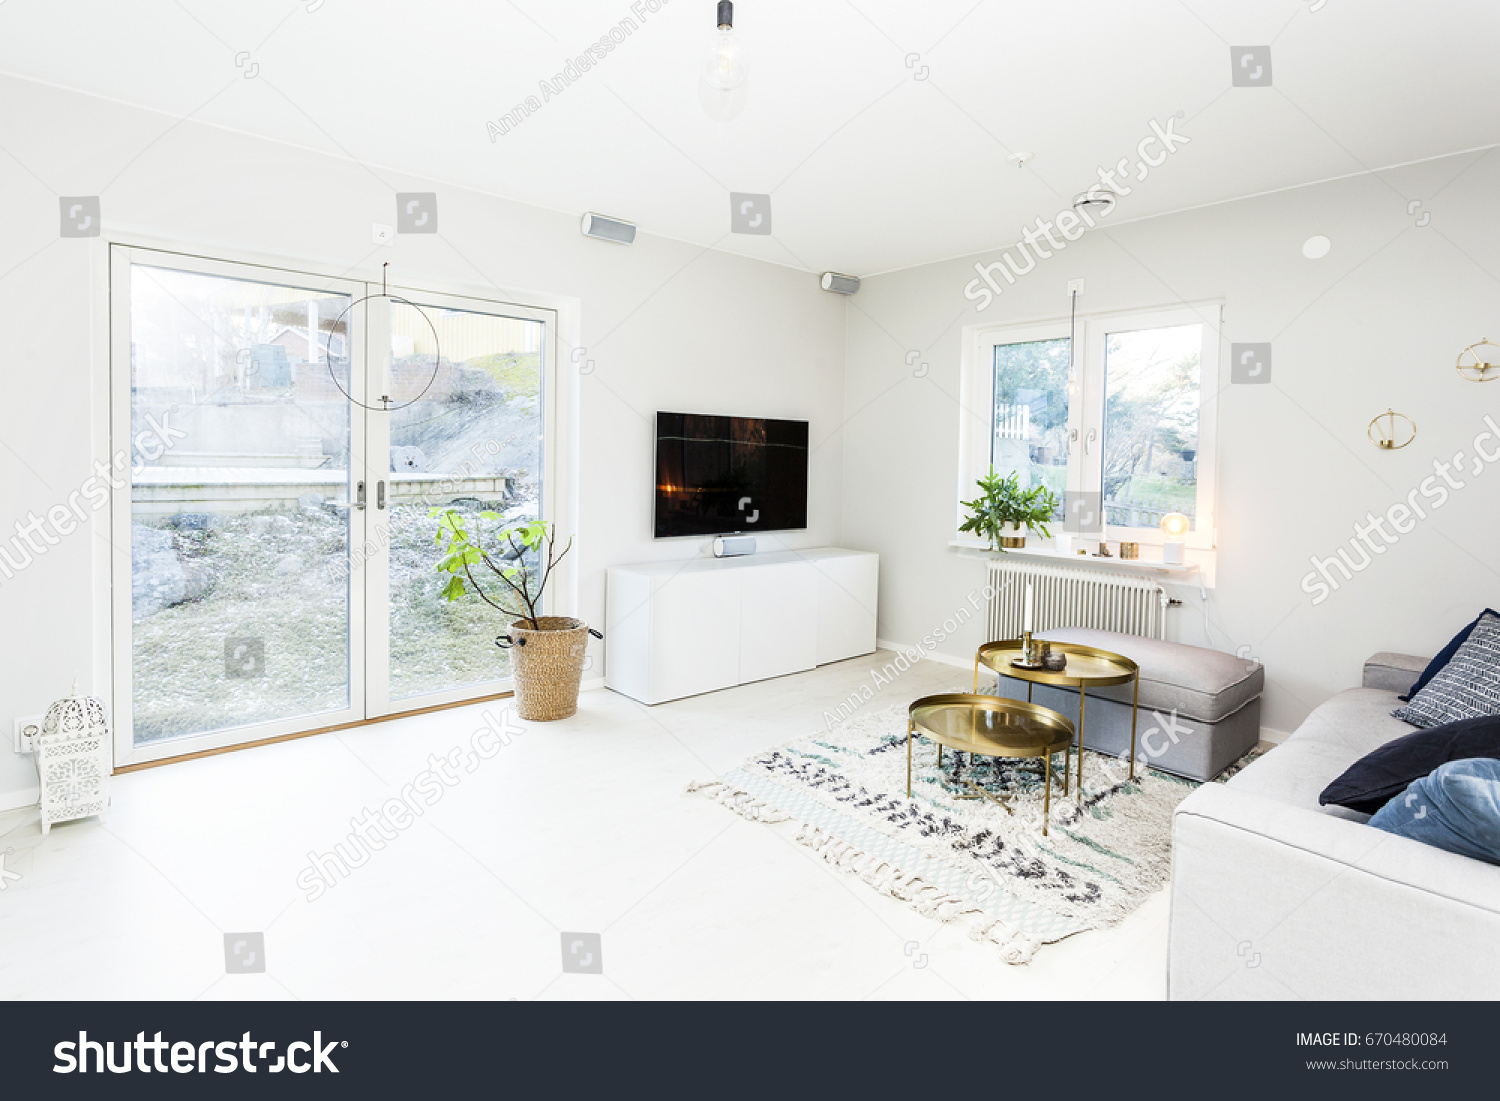 Fancy living room with tv and glass doors out to the garden